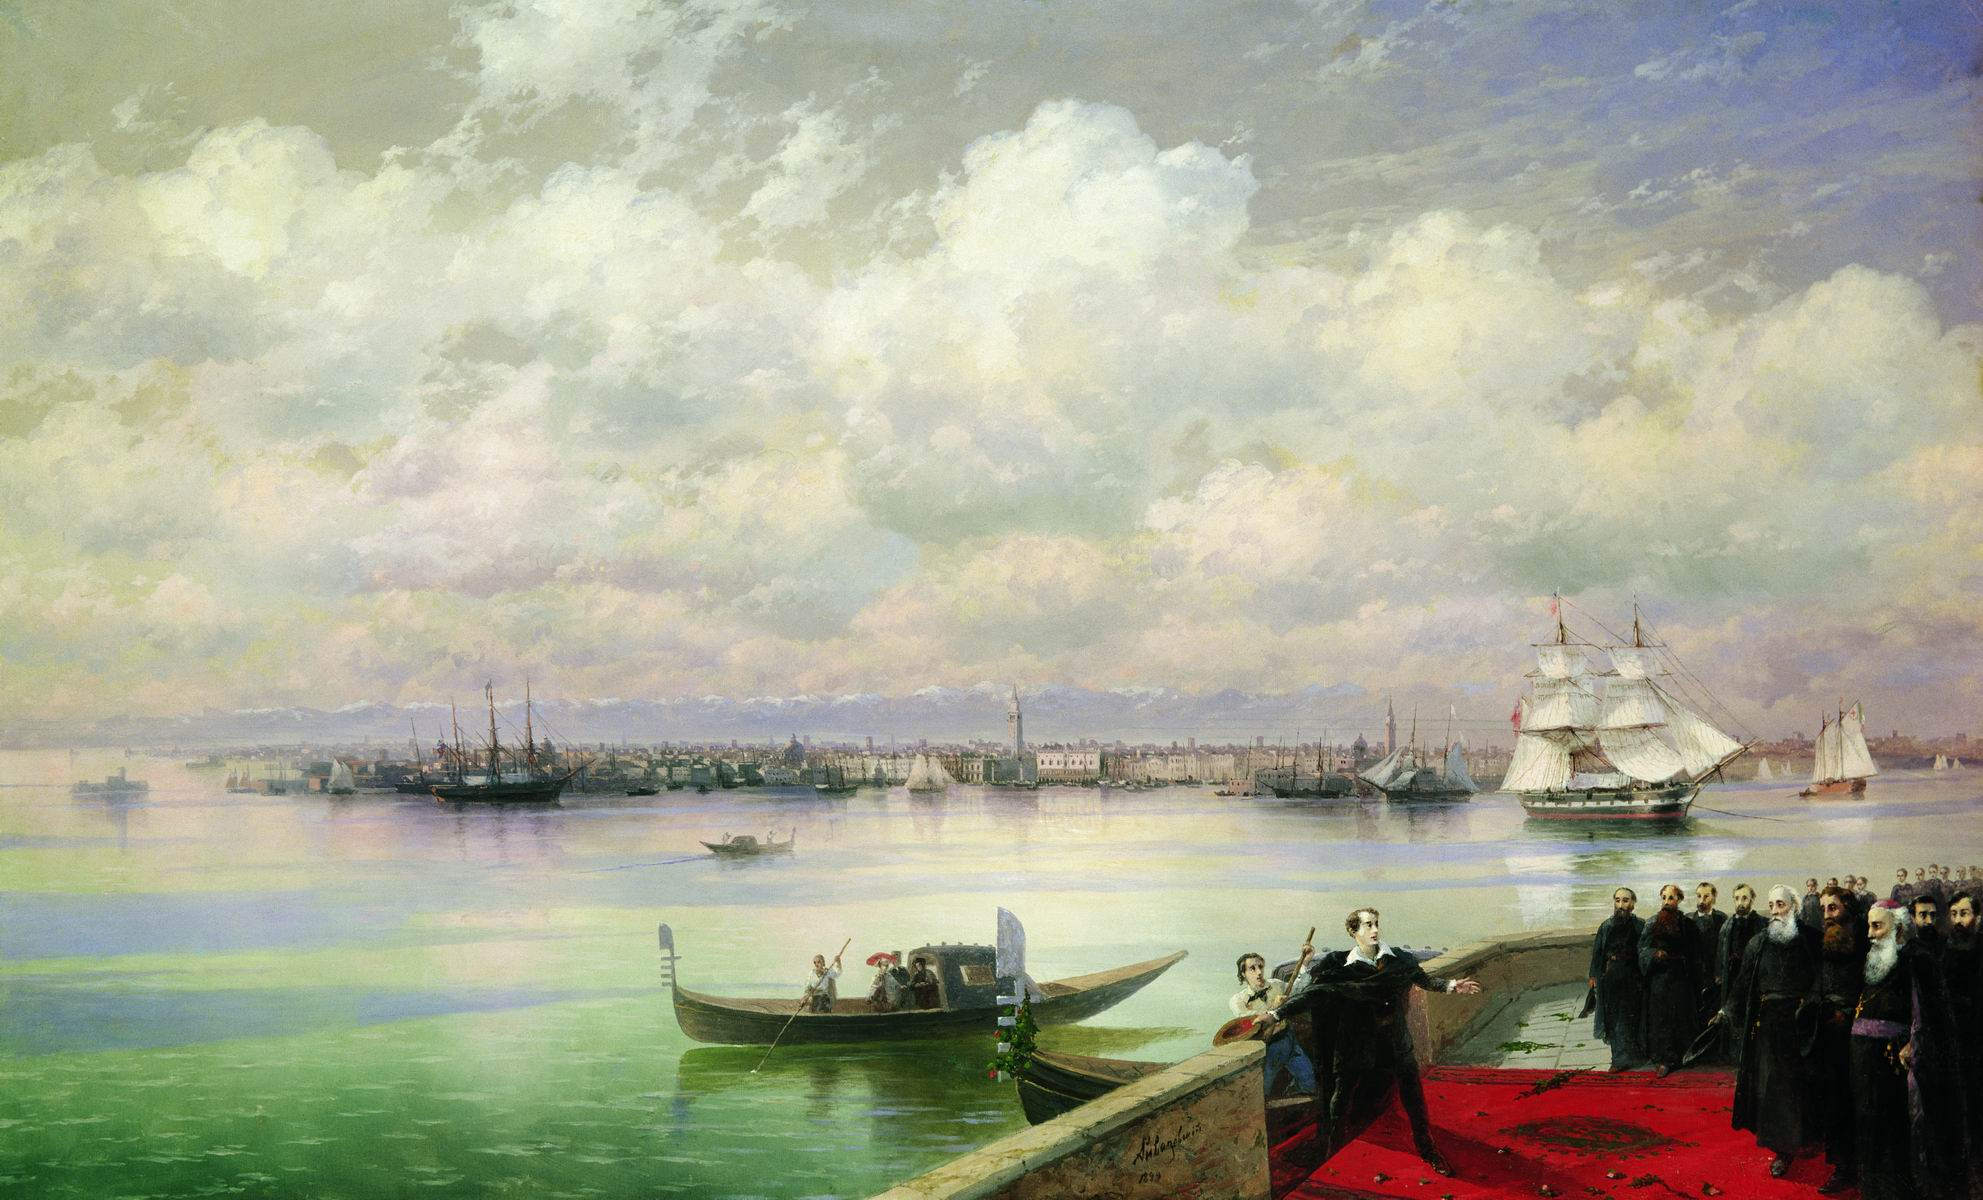 This impossibly romantic image of Lord Byron (poet) arriving on the Venetian island of San Lazzaro to be welcomed by the Armenian community there (Painting 1890s)